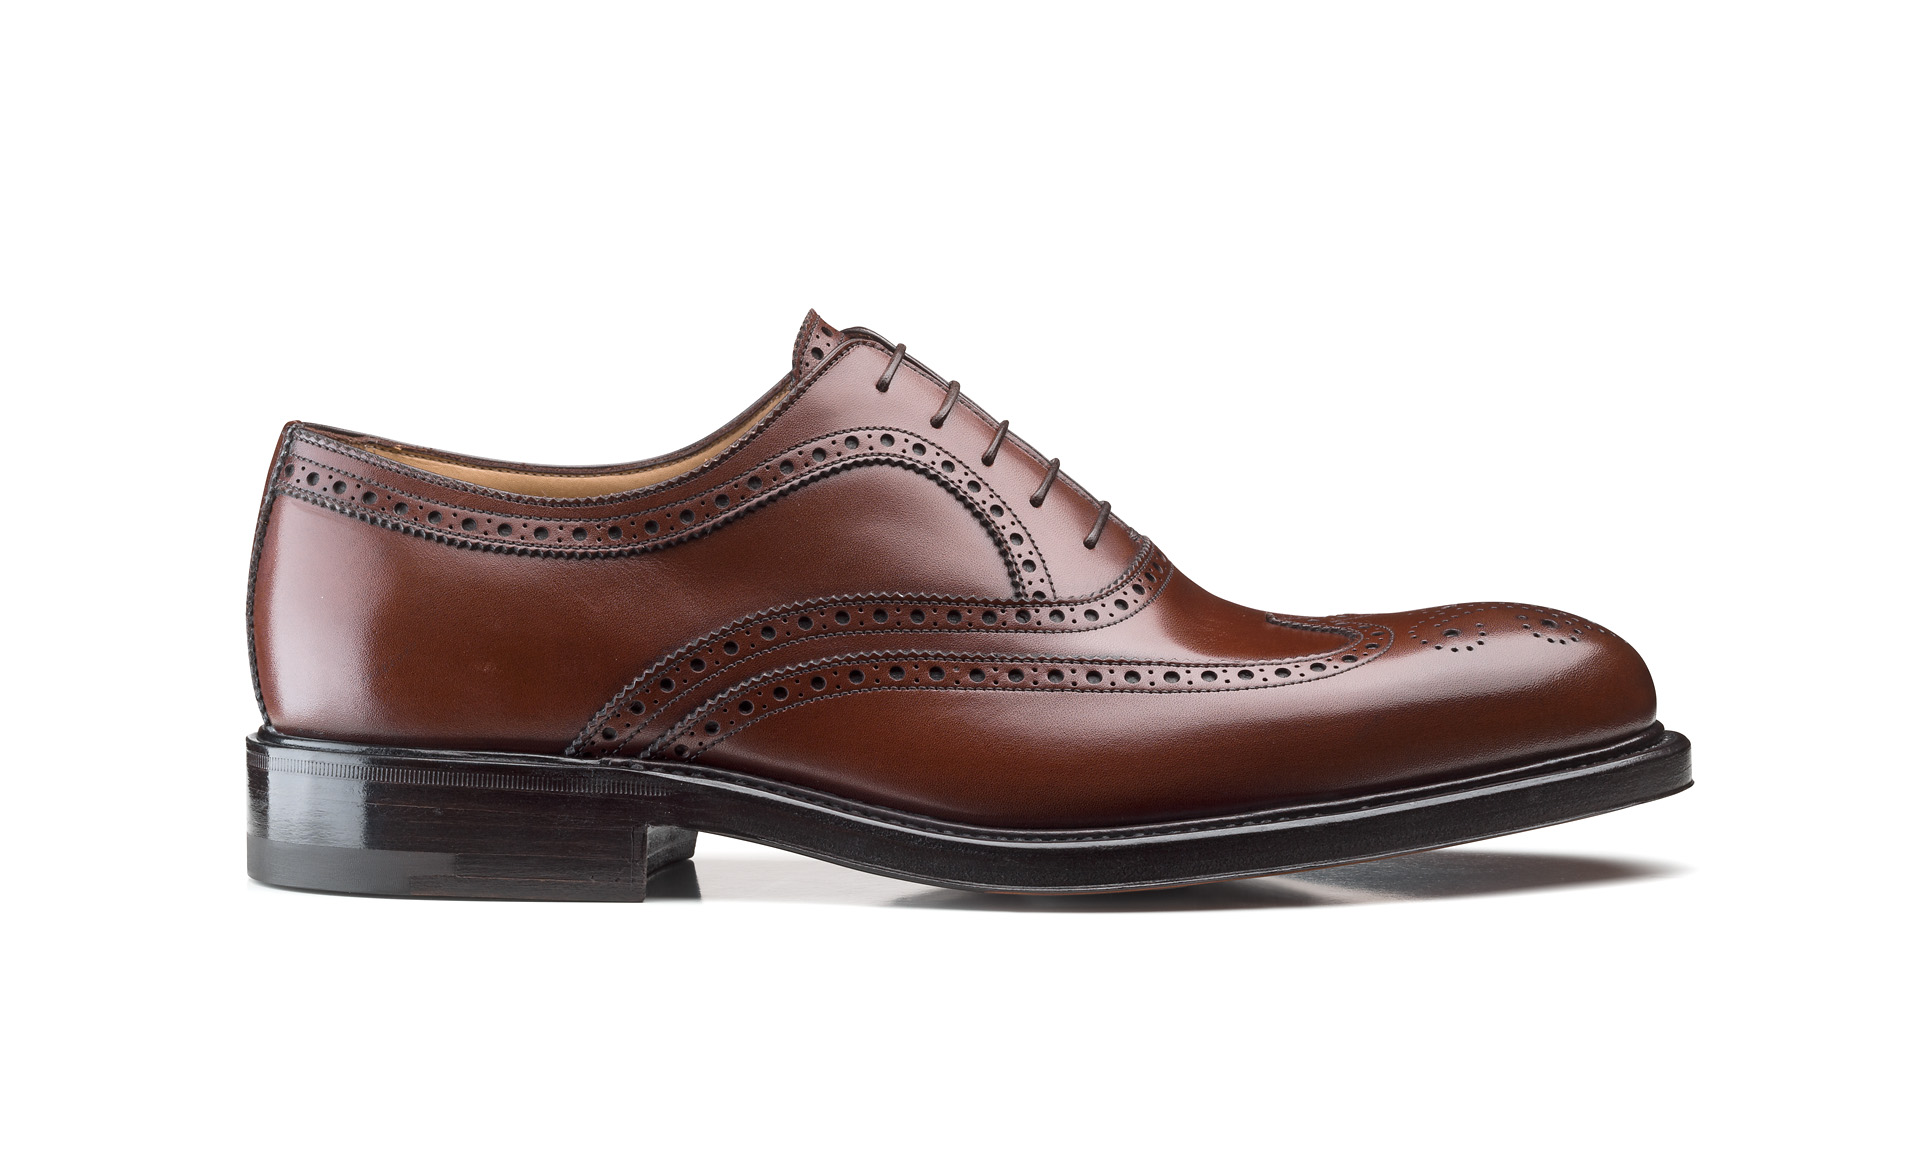 Full Brogue Oxfords